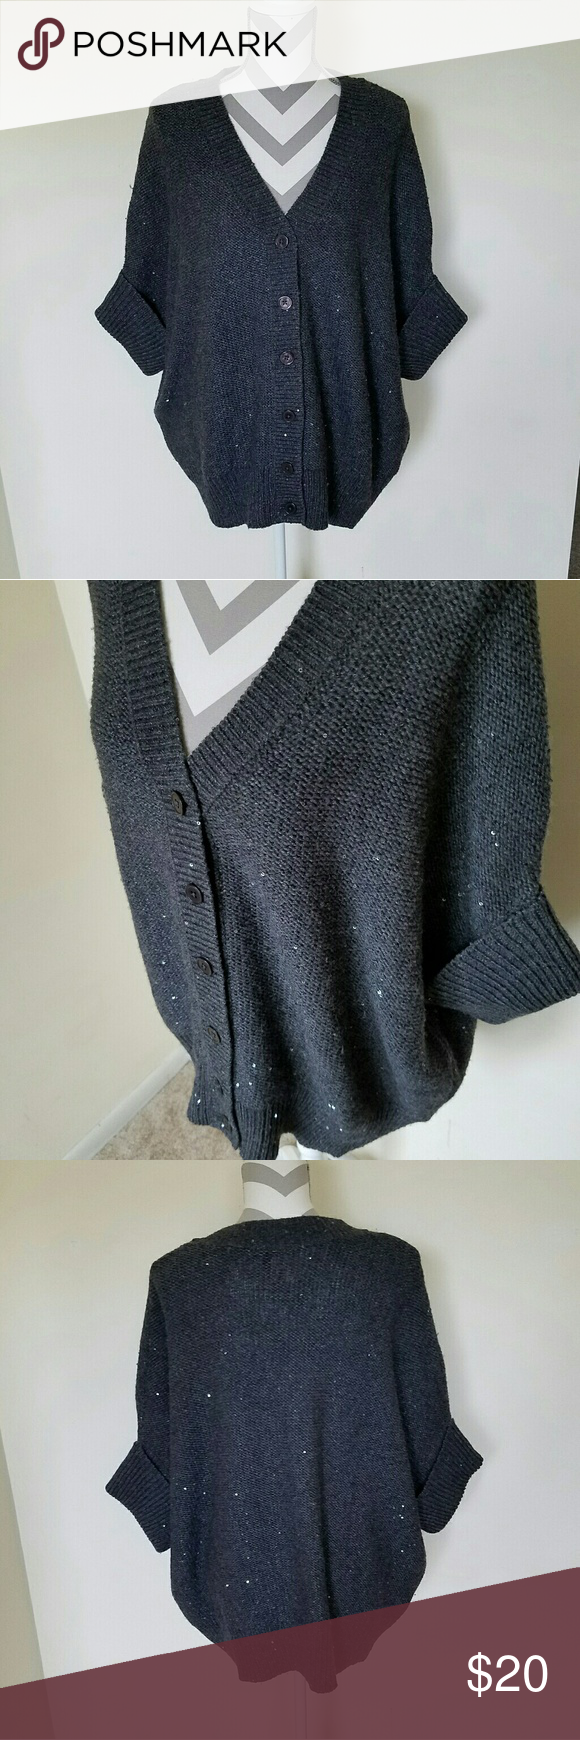 Oversized Sequin Cardigan Sweater! Charcoal colored sweater with ...